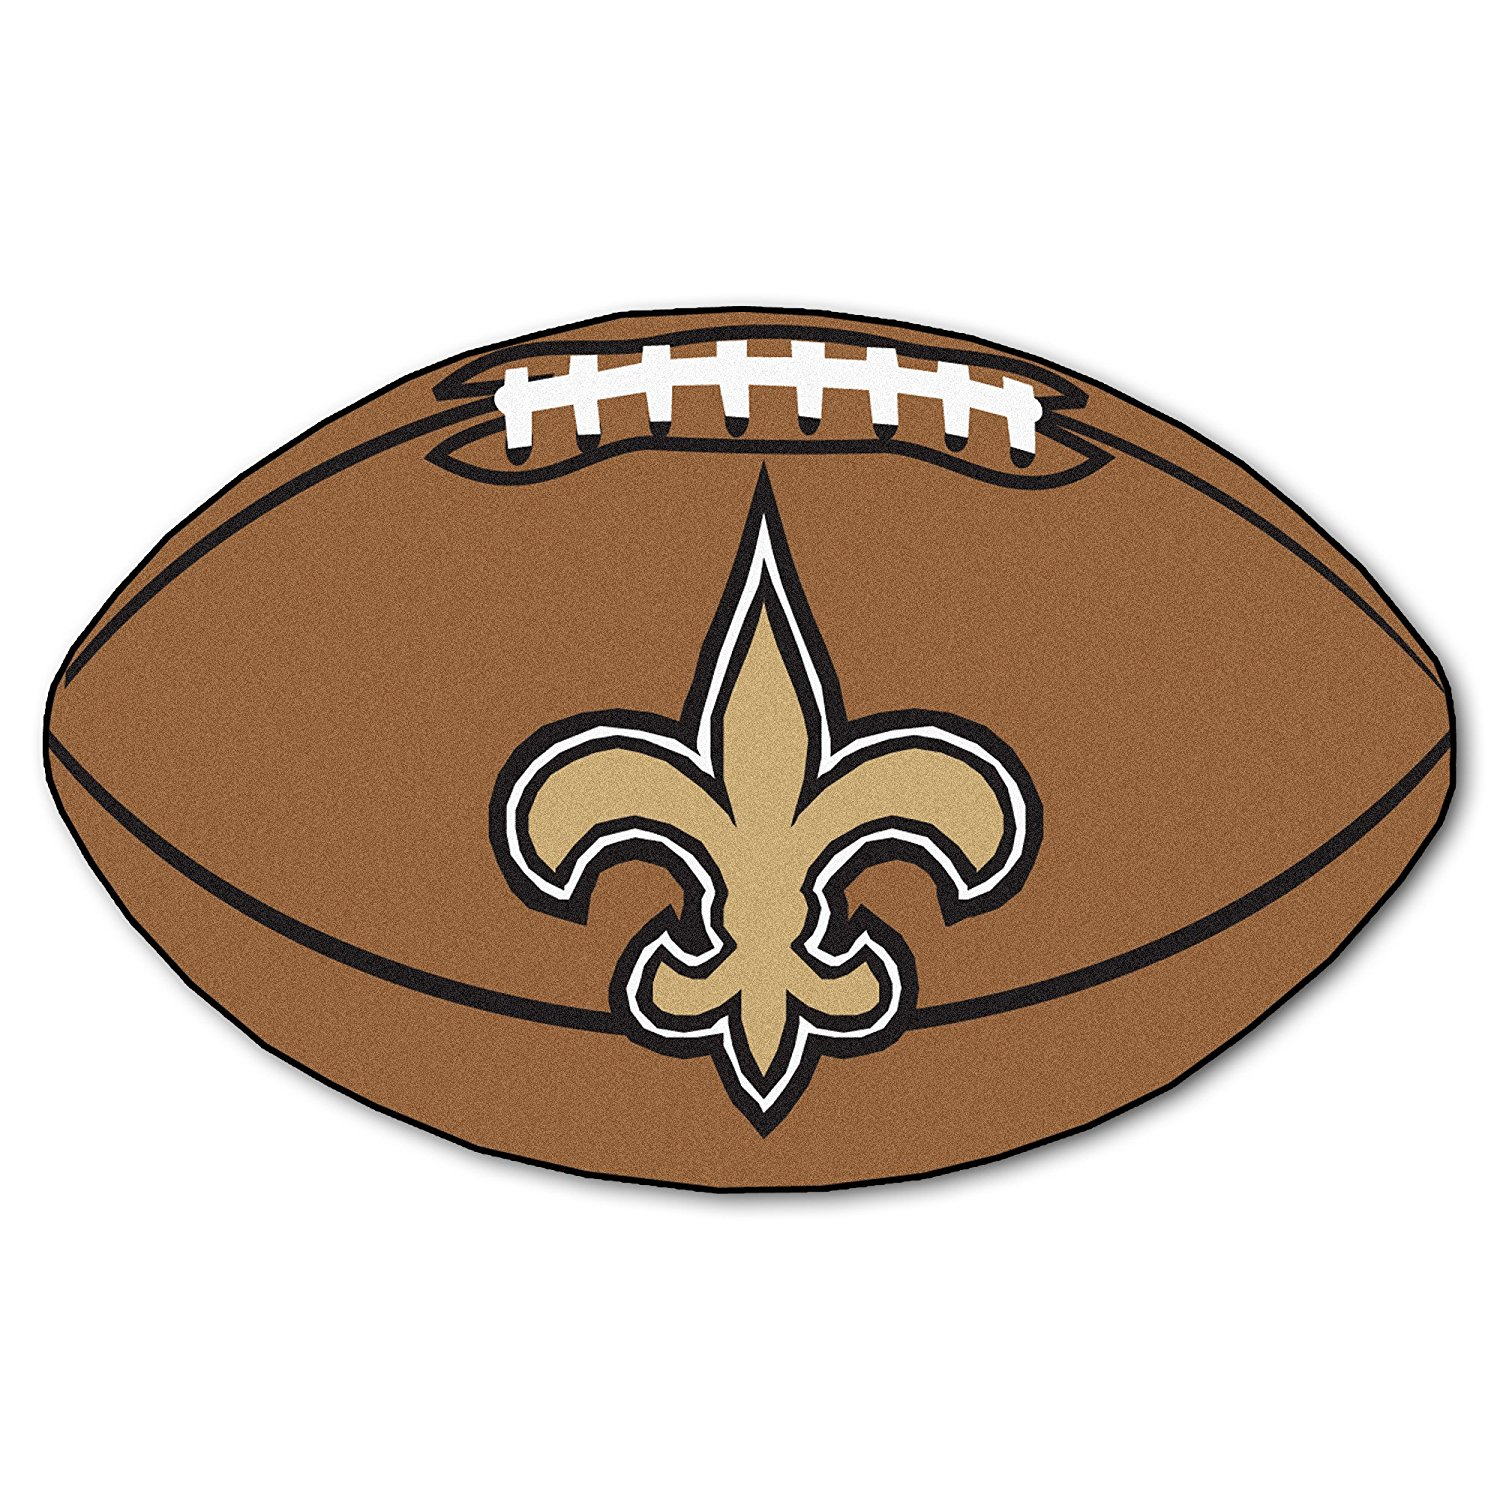 NFL New Orleans Saints Nylon Face Football Rug, 22 inches x 35 inches By Fanmats